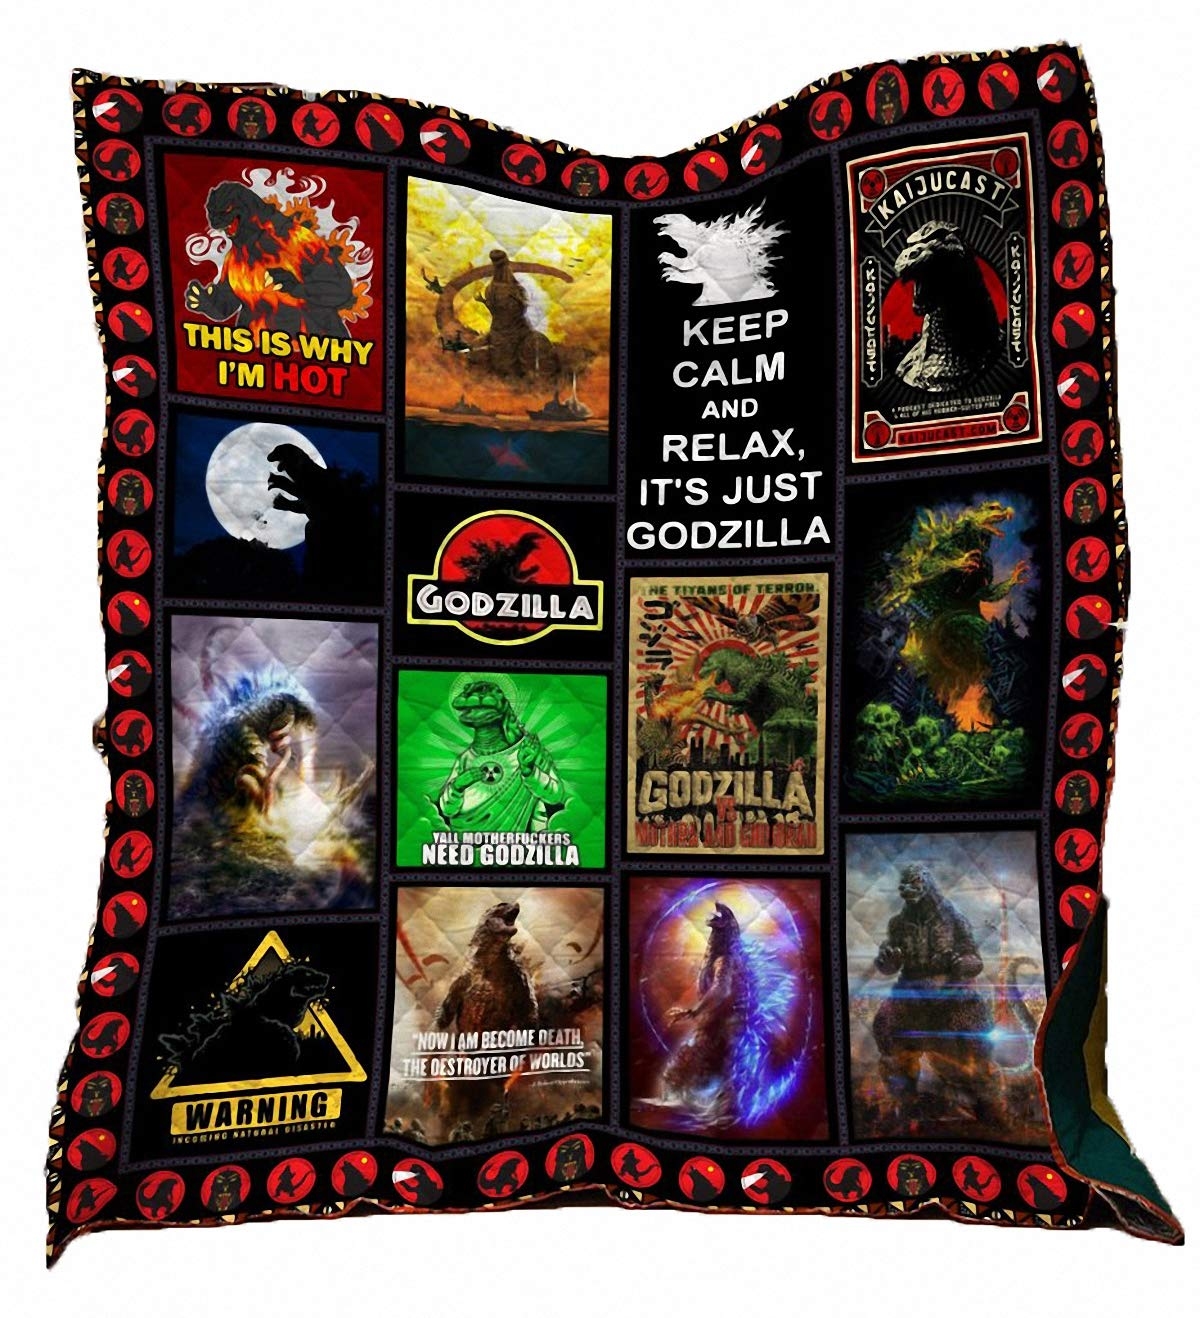 owho Summer 3D Godzilla Monste Quilt Blanket for Kids Adults Bedding Throw Soft Warm Thin Blanket with Cotton Quilt King Size